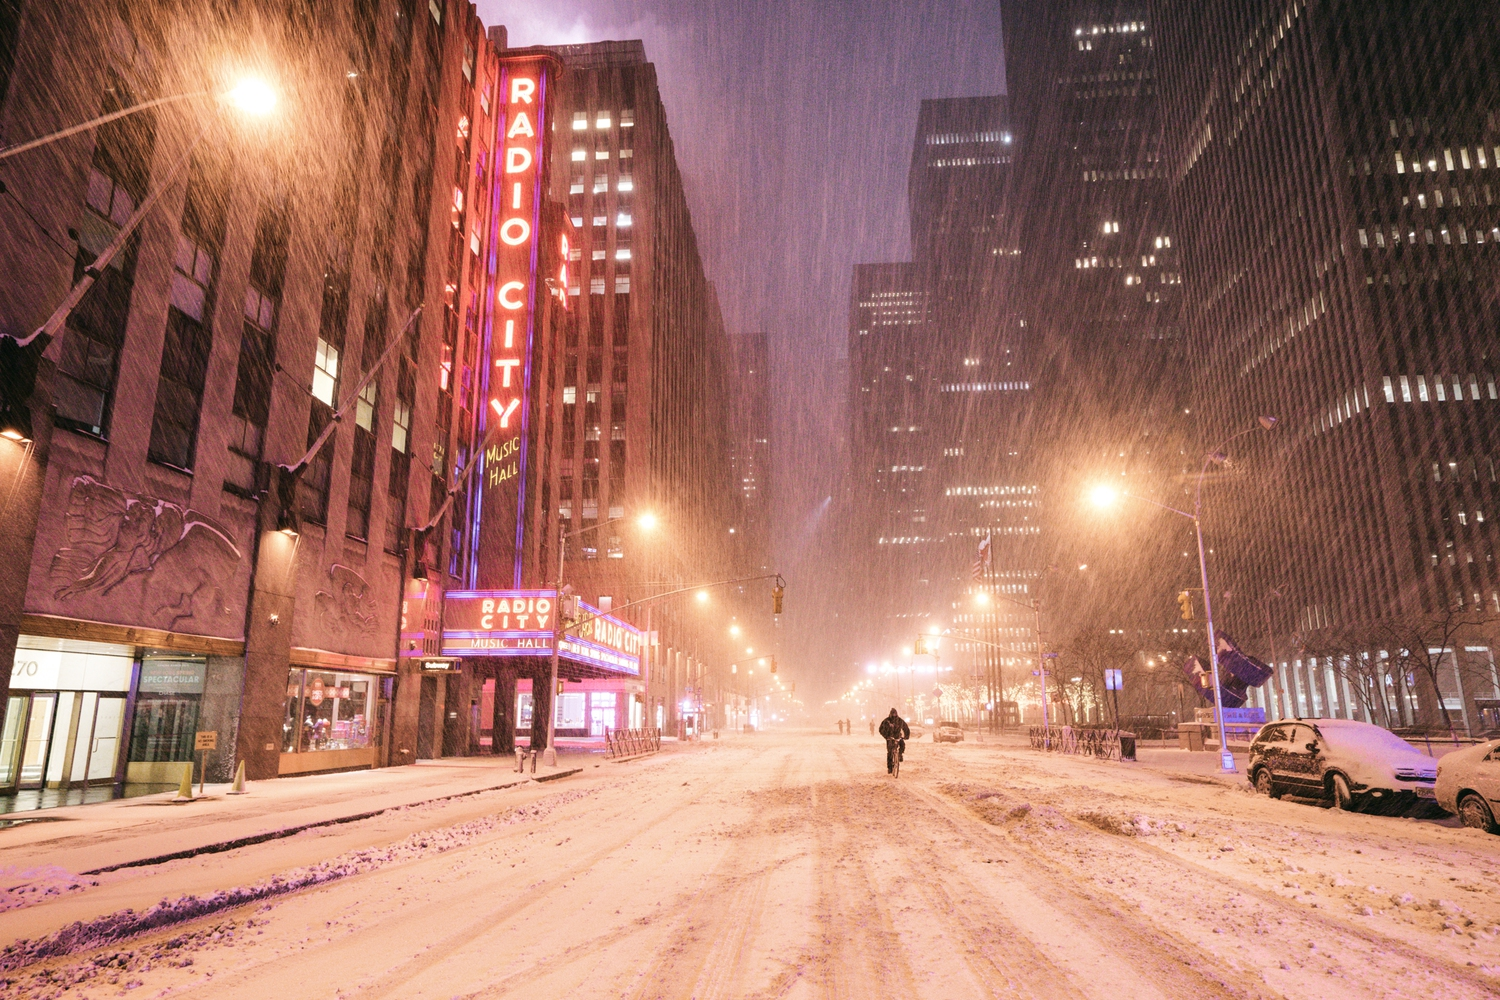 "New York City - Snow - Winter Storm Juno - Radio City Music Hall | Juno: The first snowstorm of 2015 in New York City.  ---  (Note: My <a href=""http://www.amazon.com/gp/product/1440339589/ref=as_li_tl?ie=UTF8&camp=1789&creative=9325&creativeASIN=1440339589&linkCode=as2&tag=nyththle0e-20&linkId=ER6GYT5FRYNMEPLF"" rel=""nofollow"">New York photography book</a> released worldwide in stores/online recently and has photos similar to this  [full info below])  ---  I have been photographing New York City during snowstorms at night for the past 5 years. When it comes to experiencing <a href=""http://nythroughthelens.com/tagged/snow"" rel=""nofollow"">New York City in the snow</a>, I relish the challenge. The more gusty, snowy, and brutal the storm, the more of a chance that I will be out in it traipsing around New York City with my cameras in tow.  When I heard that the MTA was suspending all transit service (and most vehicles) at 11 pm, I made the decision to take the train up to the Upper East Side prior to 11 pm to deposit myself up there with the intention of walking from the Upper East Side to Times Square and then walking the several miles back to the Lower East Side (whew!!).  The streets were eerily empty.  Emptier than they are usually at night during snowfall. Since there was a ban on all vehicles aside from snow plows and emergency services, there were practically no cars at all on the streets. Even taxis were banned from the streets!  I walked in the middle of avenues and streets that are usually teeming with cars.  There was an eerie sense of calm.  It was magical.   ---  This is part of a post that I posted to my NYC photography blog. If you are curious enough to look at the photos there, here is the link to the post:  <a href=""http://nythroughthelens.com/post/109291619025/new-york-city-snow-winter-storm-juno-i"" rel=""nofollow"">New York City - Winter Storm Juno</a>   ----  * As mentioned above - My New York City coffee table book that released in stores/online worldwide recently.   Tons of information about my <a href=""http://www.amazon.com/gp/product/1440339589/ref=as_li_tl?ie=UTF8&camp=1789&creative=9325&creativeASIN=1440339589&linkCode=as2&tag=nyththle0e-20&linkId=ER6GYT5FRYNMEPLF"" rel=""nofollow"">New York photography book</a> with sample pages (including where to order and what stores are carrying it) here:  <a href=""http://nythroughthelens.com/post/92873566010/ny-through-the-lens-the-book-i-am-super"" rel=""nofollow"">NY Through The Lens: A New York Coffee Table Book</a> ---   View my New York City photography at my website <a href=""http://nythroughthelens.com/"" rel=""nofollow"">NY Through The Lens</a>.  View my Travel photography at my travel blog: <a href=""http://travelinglens.me/"" rel=""nofollow"">Traveling Lens</a>.  Interested in my work and have questions about PR and media? Check out my:  <a href=""http://nythroughthelens.com/about"" rel=""nofollow"">About Page</a> 